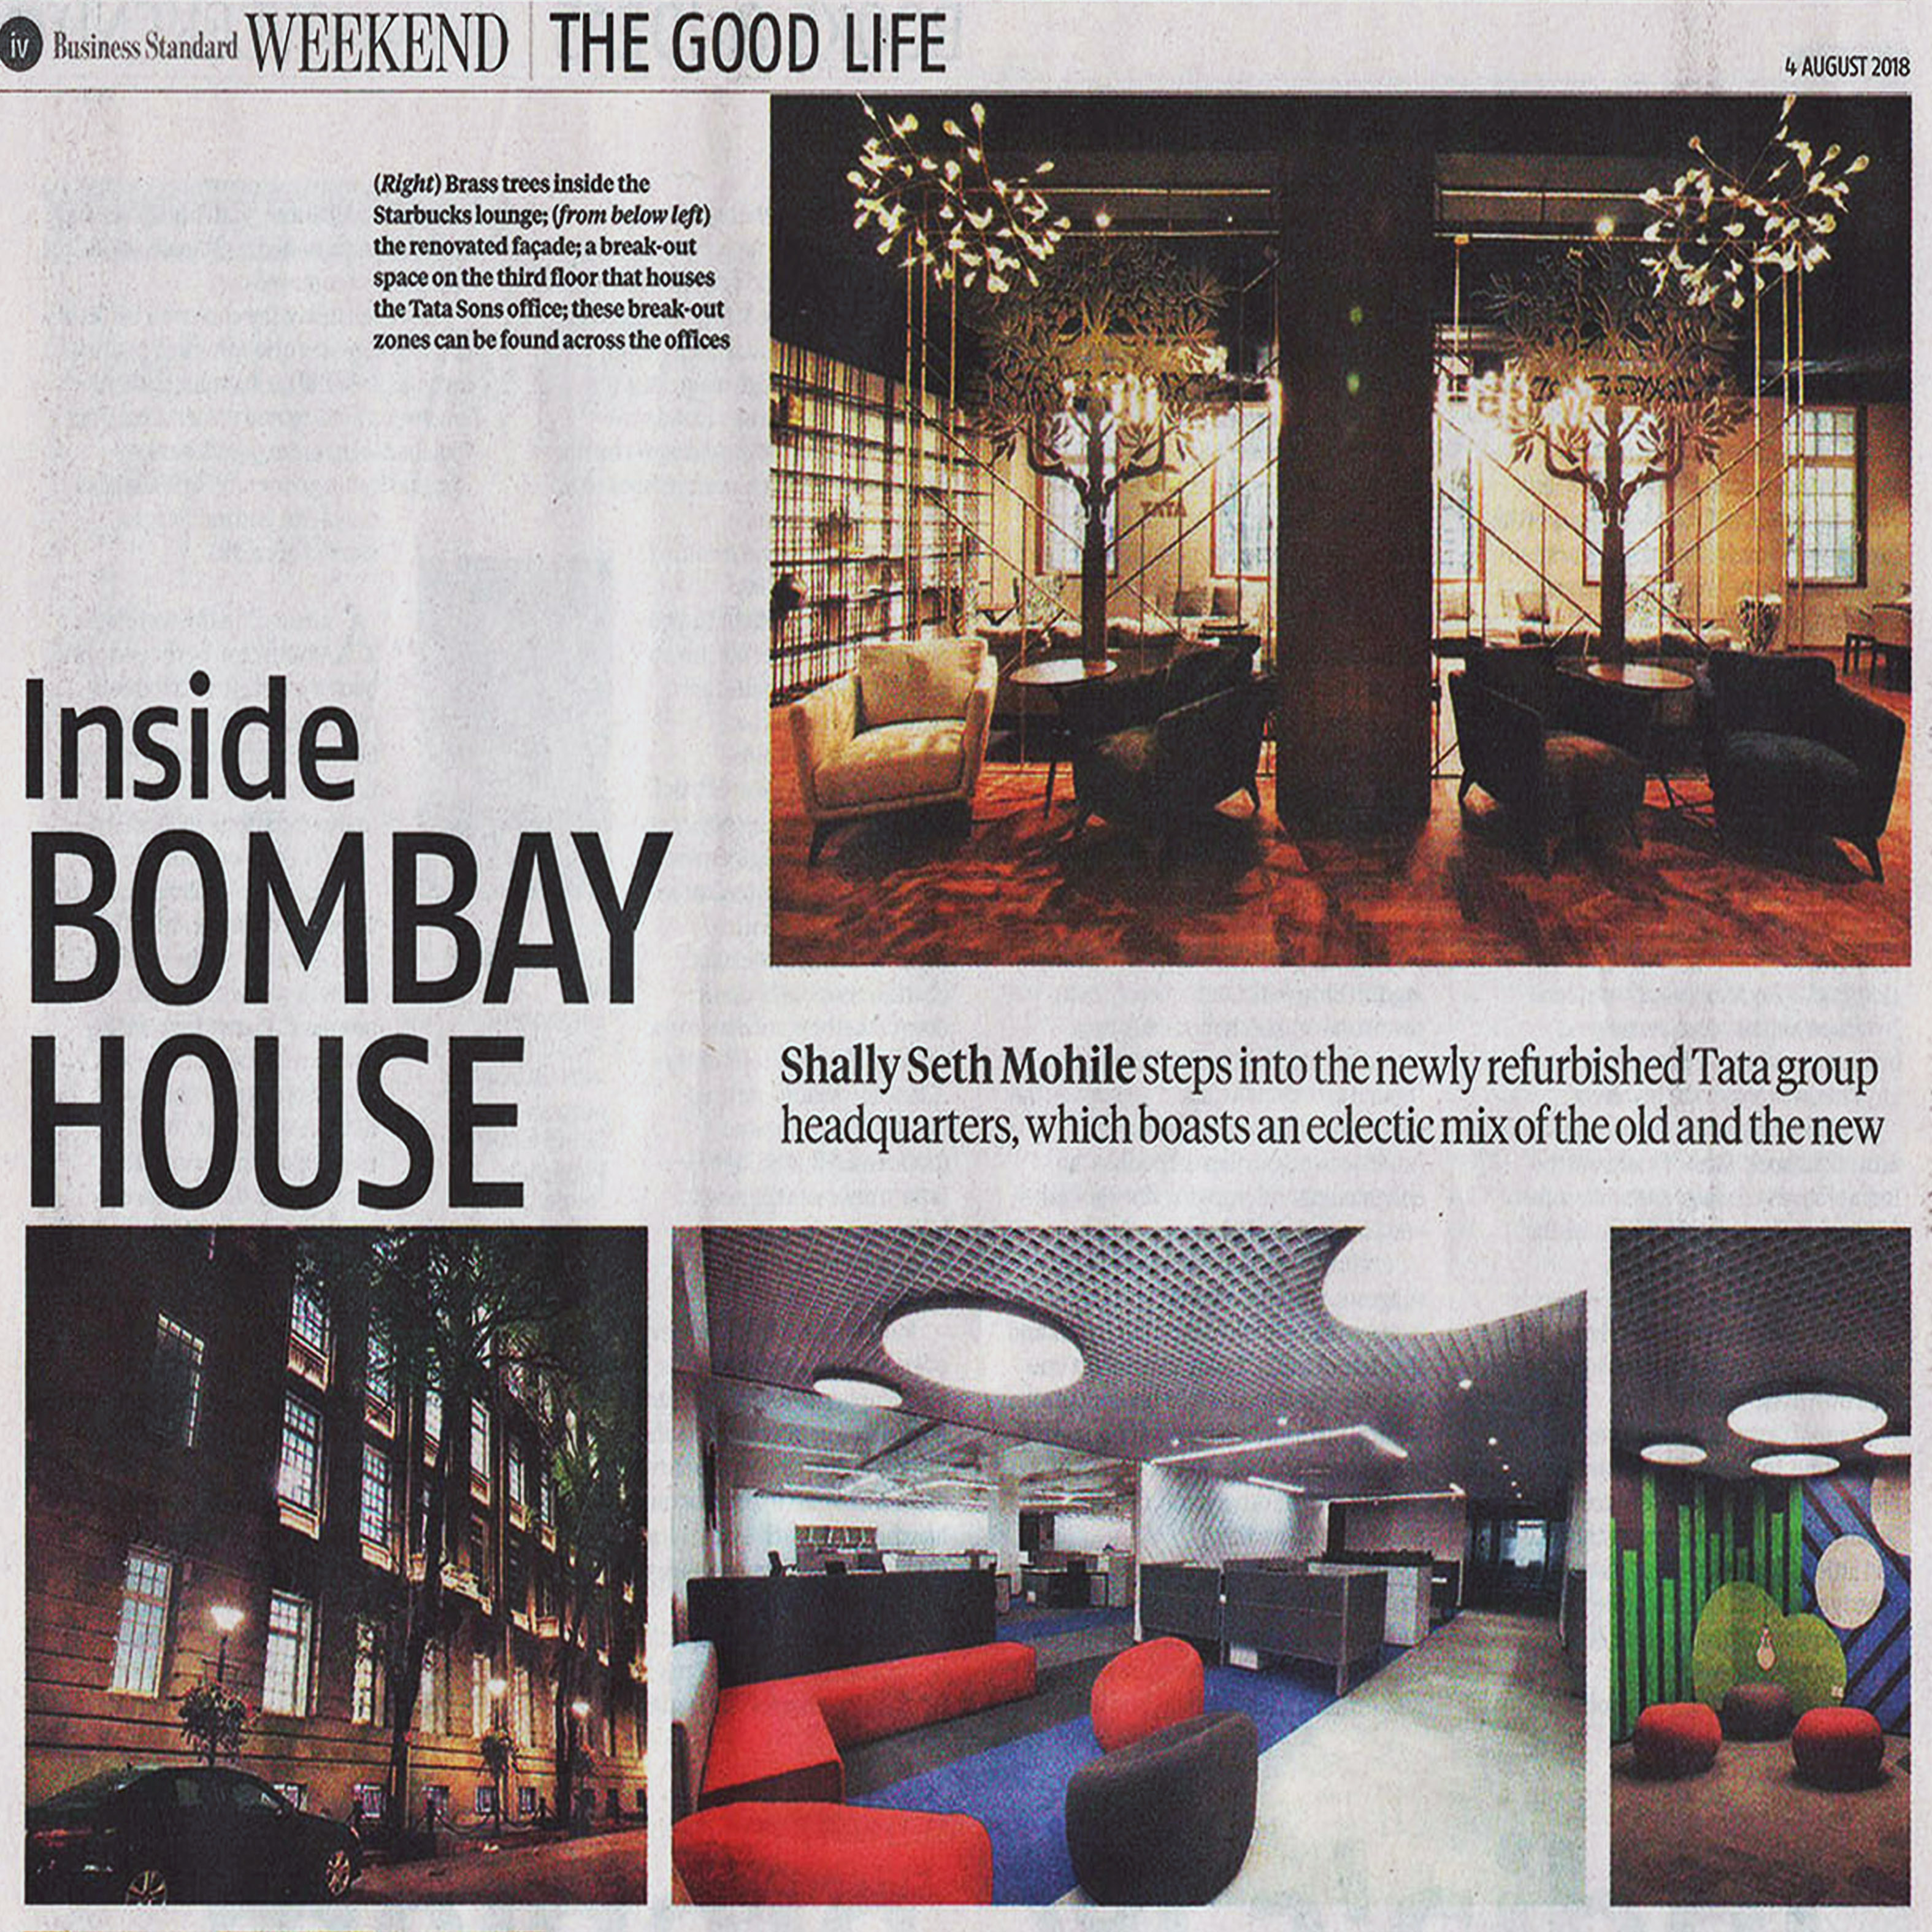 Inside Bombay House ,Business Standard - August 2018